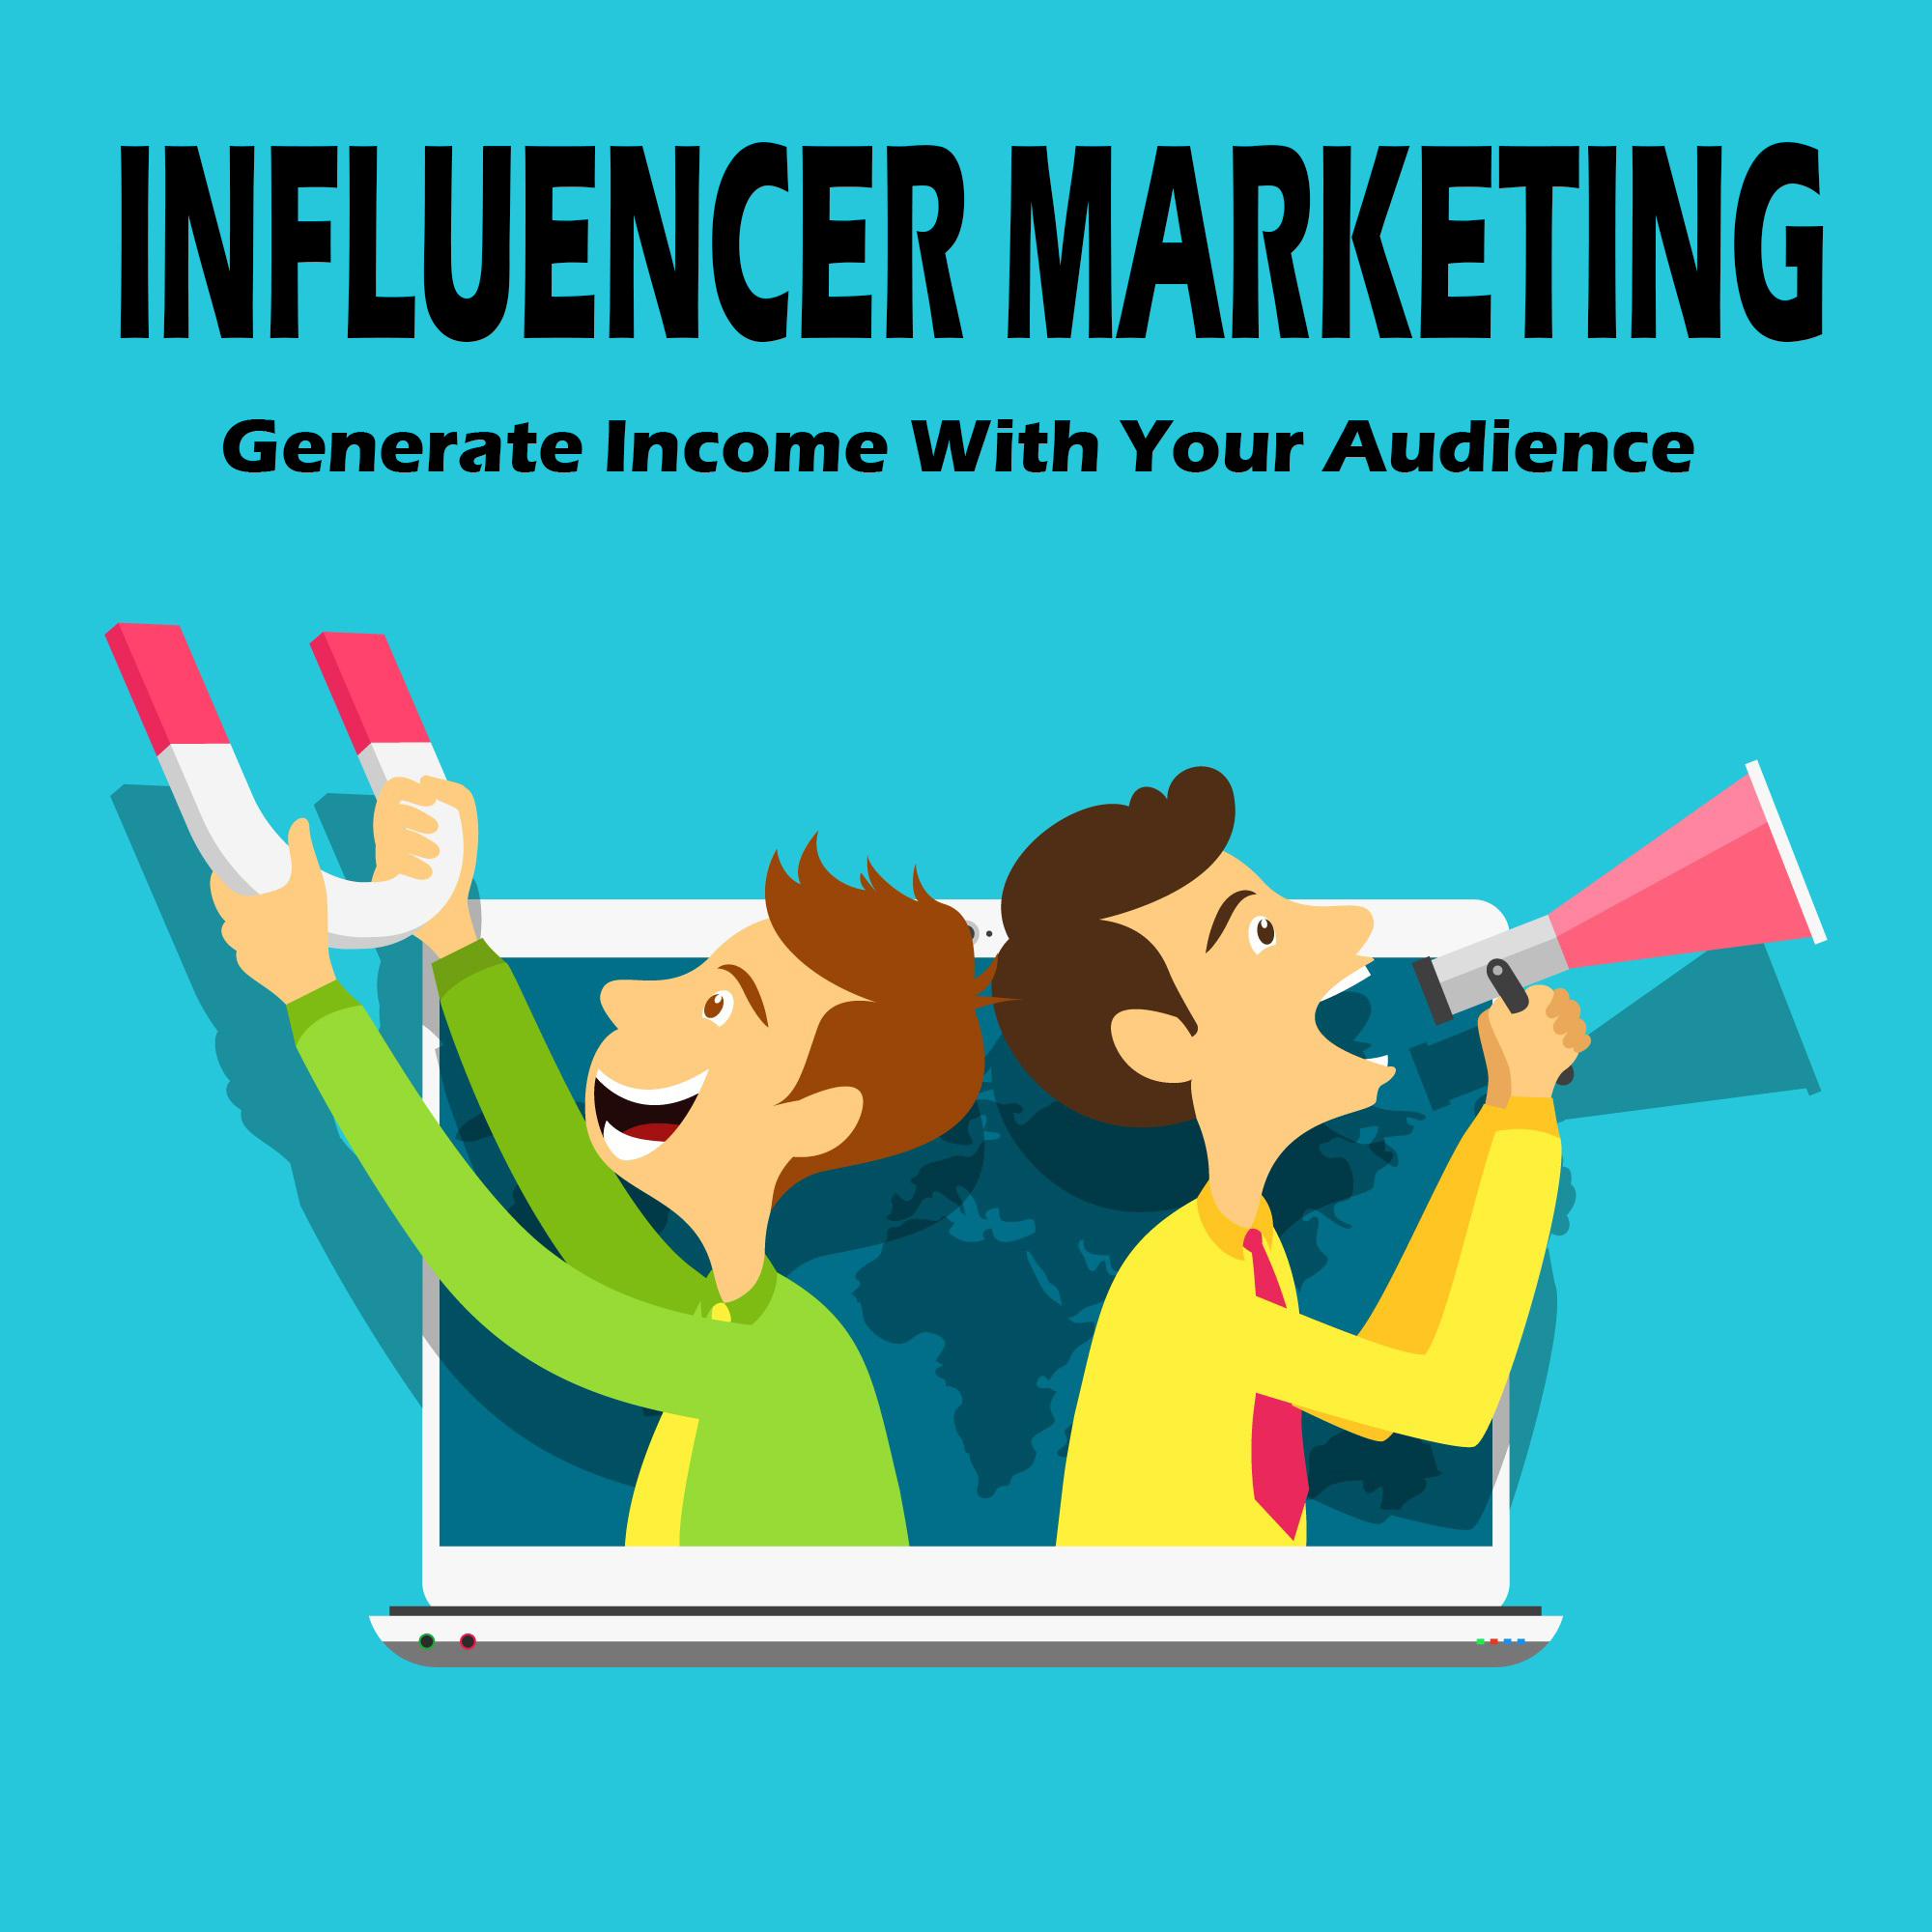 Influencer Marketing: How To Generate Income With Your Audience